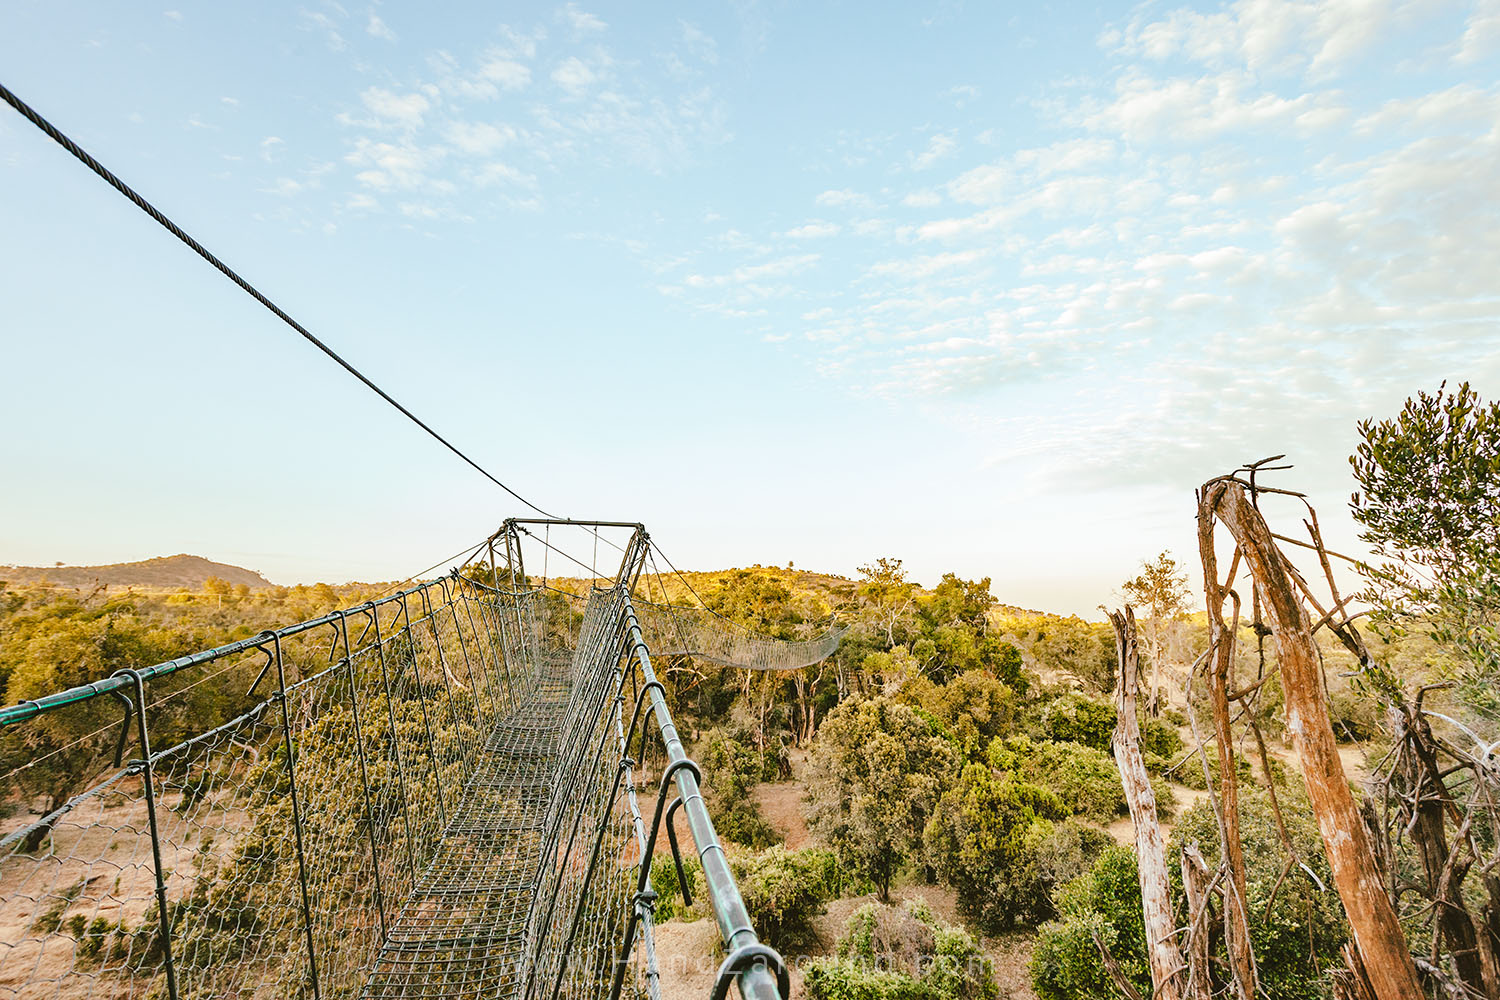 010_HANDZAROUND_NGARE_NDARE_FOREST_CANOPY_WALK_NRT_THE_BIG_NORTH_LAIKIPIA_KENYA_AFRICA.jpg